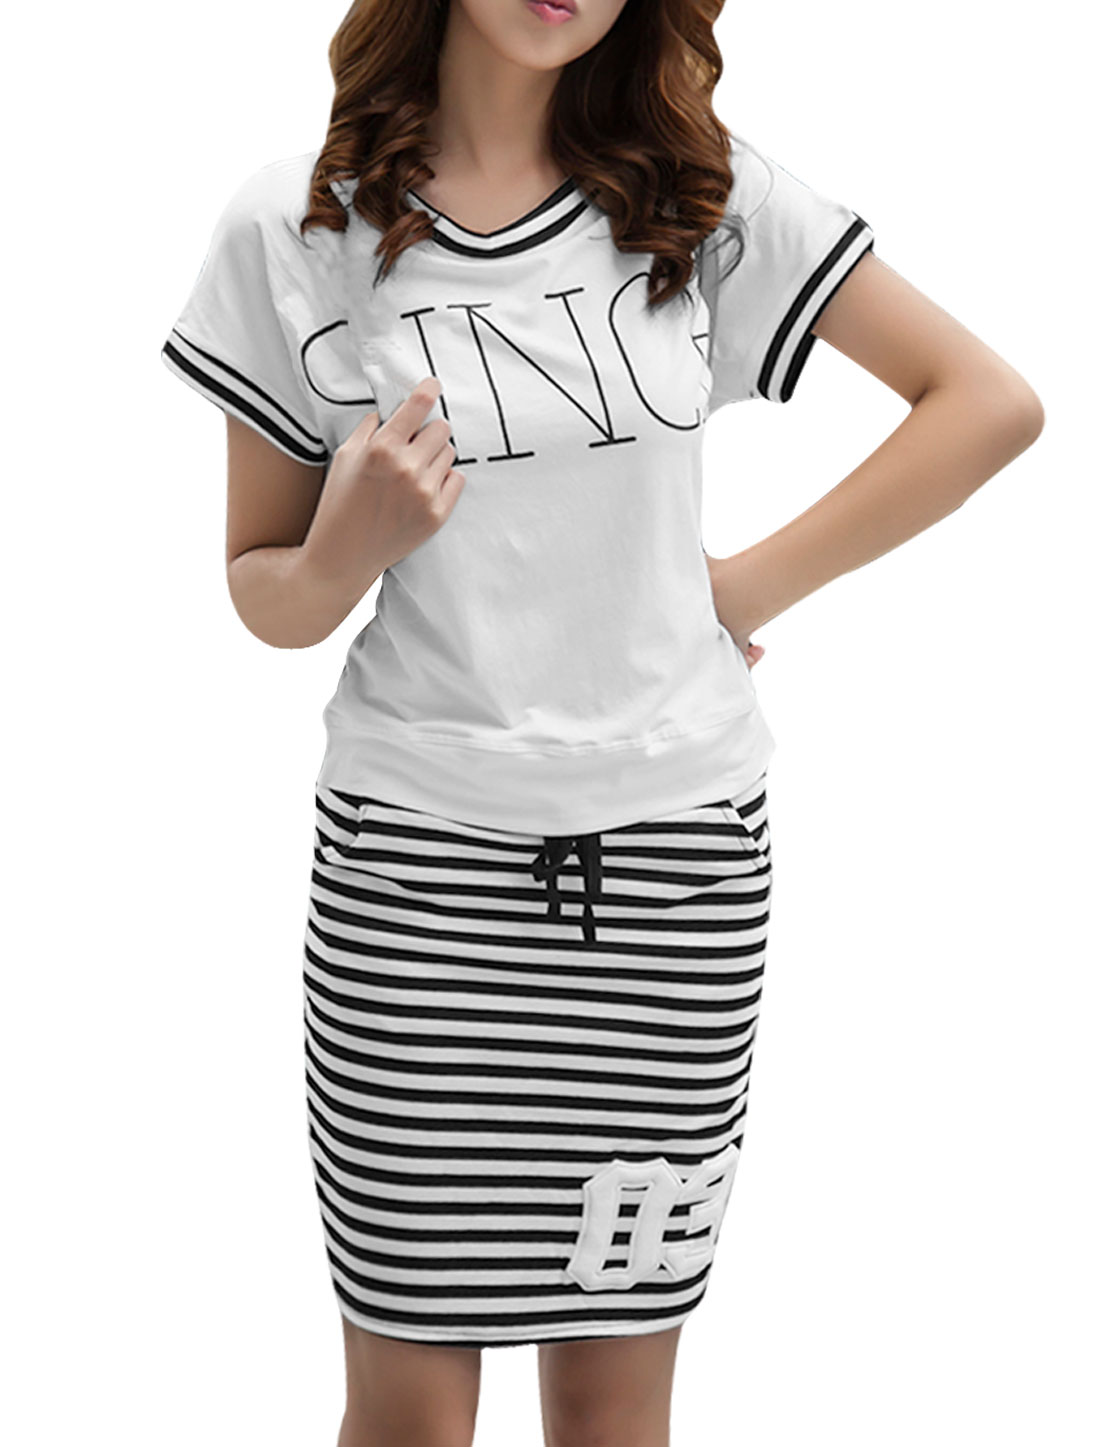 Women Letters Short-sleeved Tops w Stripes Prints Pockets Skirt White S